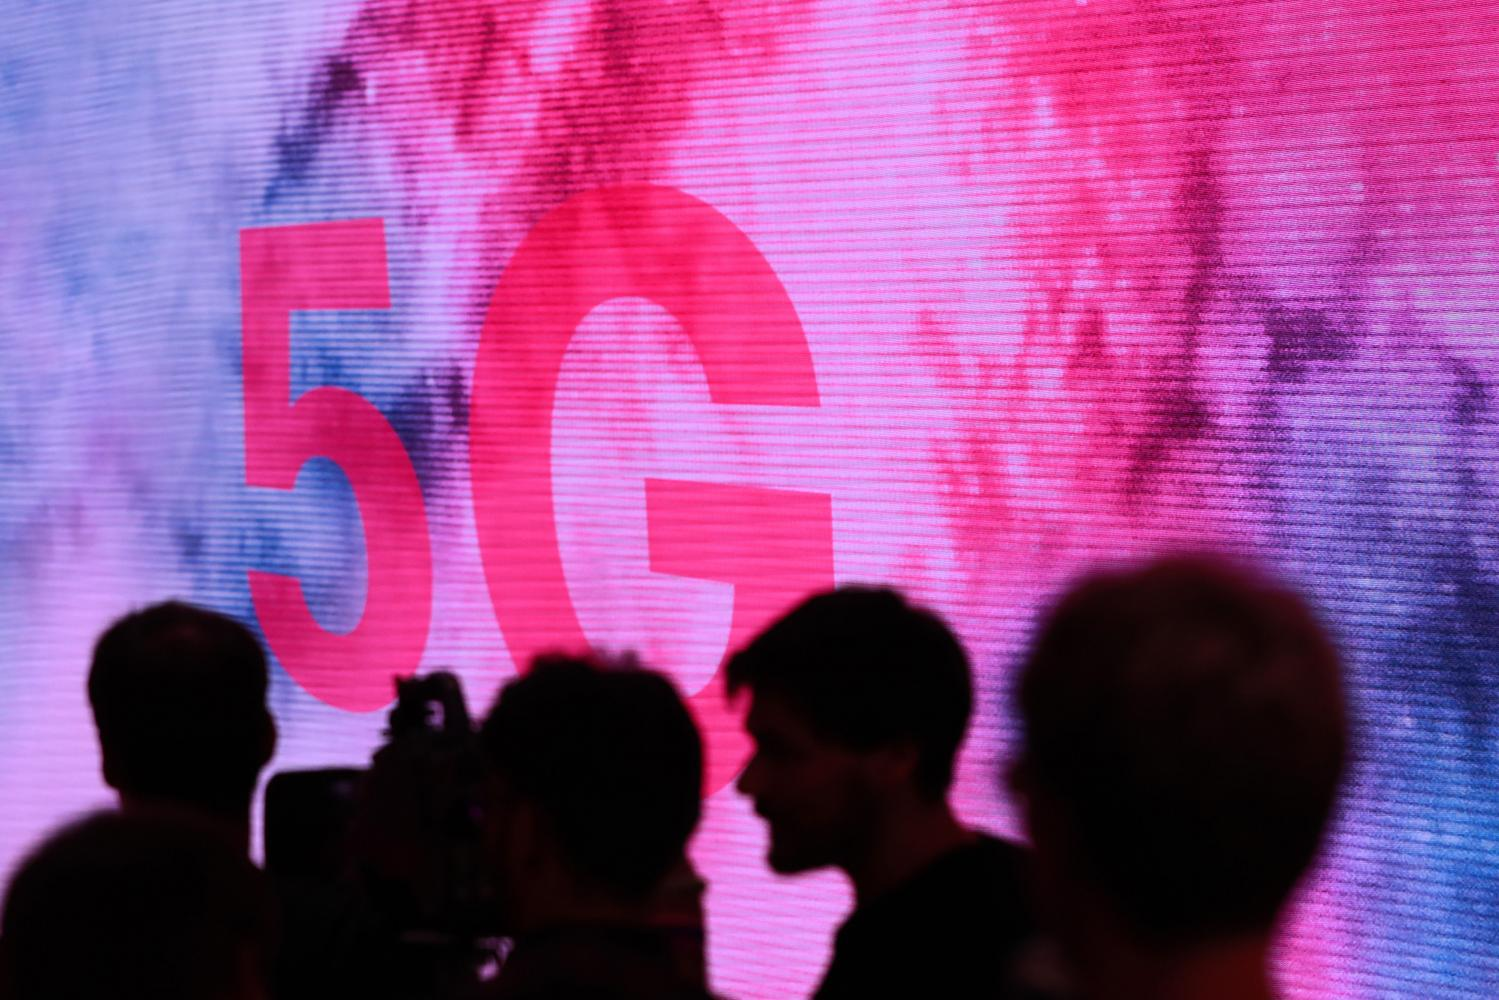 Allocation of spectrum meant for 5G technology is now the top concern in telecom circles. (Bloomberg photo)